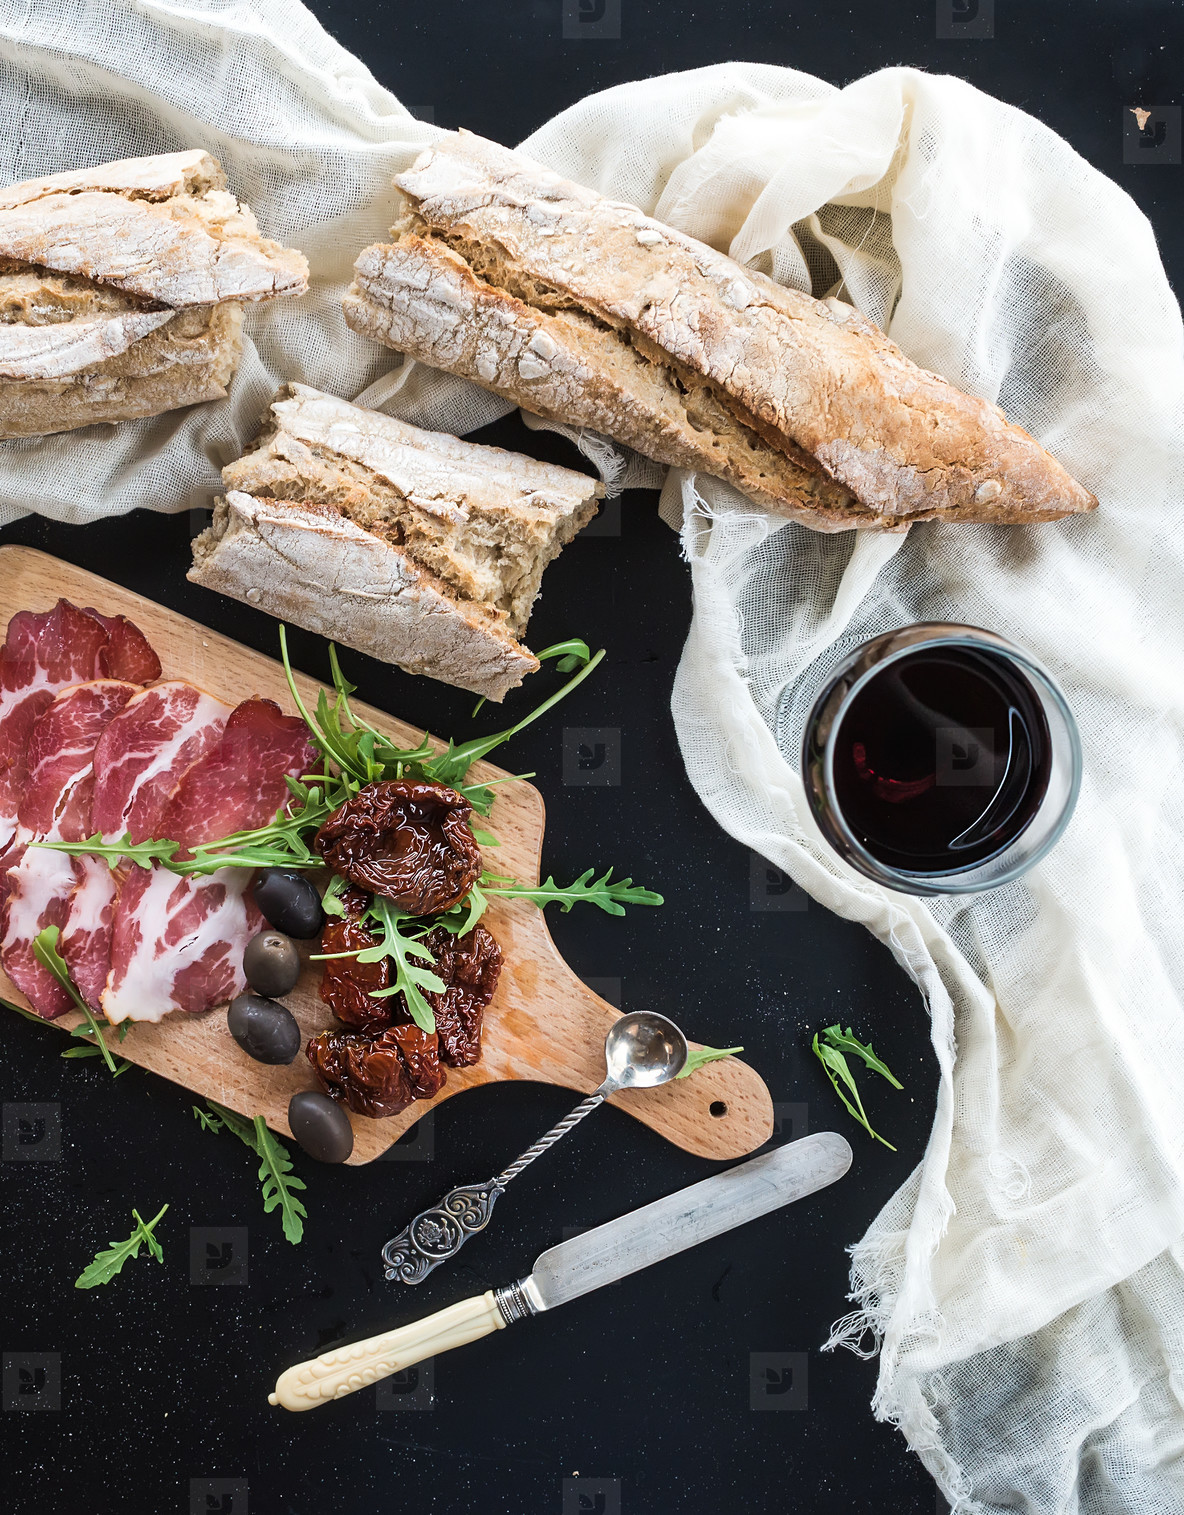 Wine appetizer set  vintage dinnerware  french baguette broken into pieces  dried tomatoes  olives  smoked meat and arugula on rustic wooden board over dark background